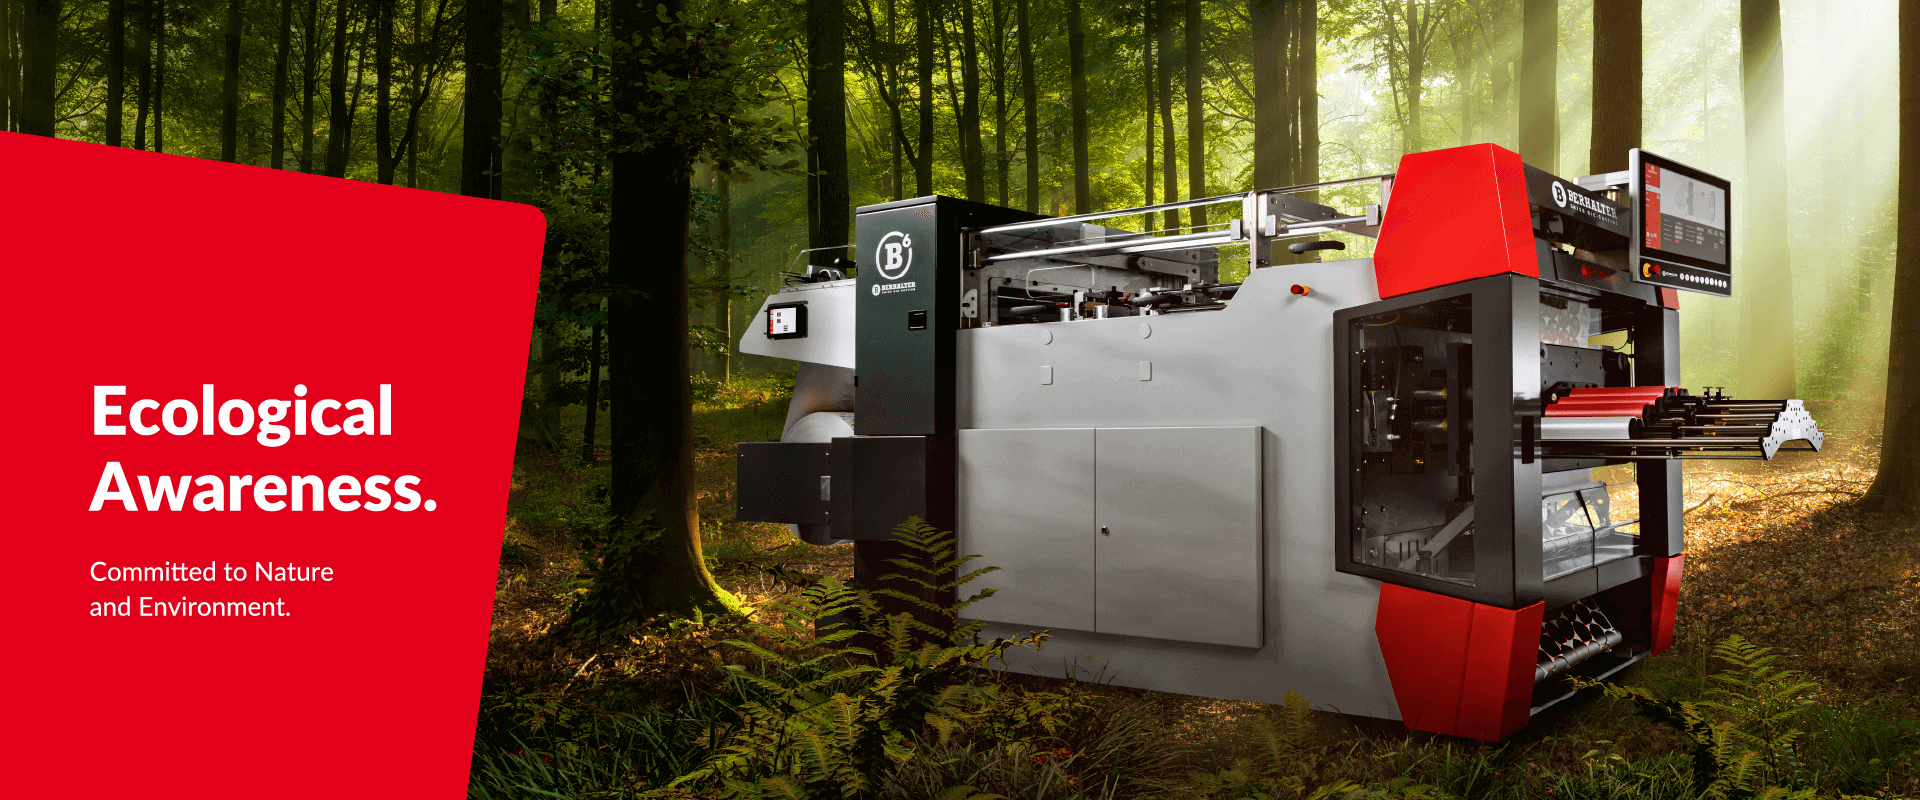 Ecological Awareness Committed to Nature and Environment BERHALTER Swiss Die-Cutting